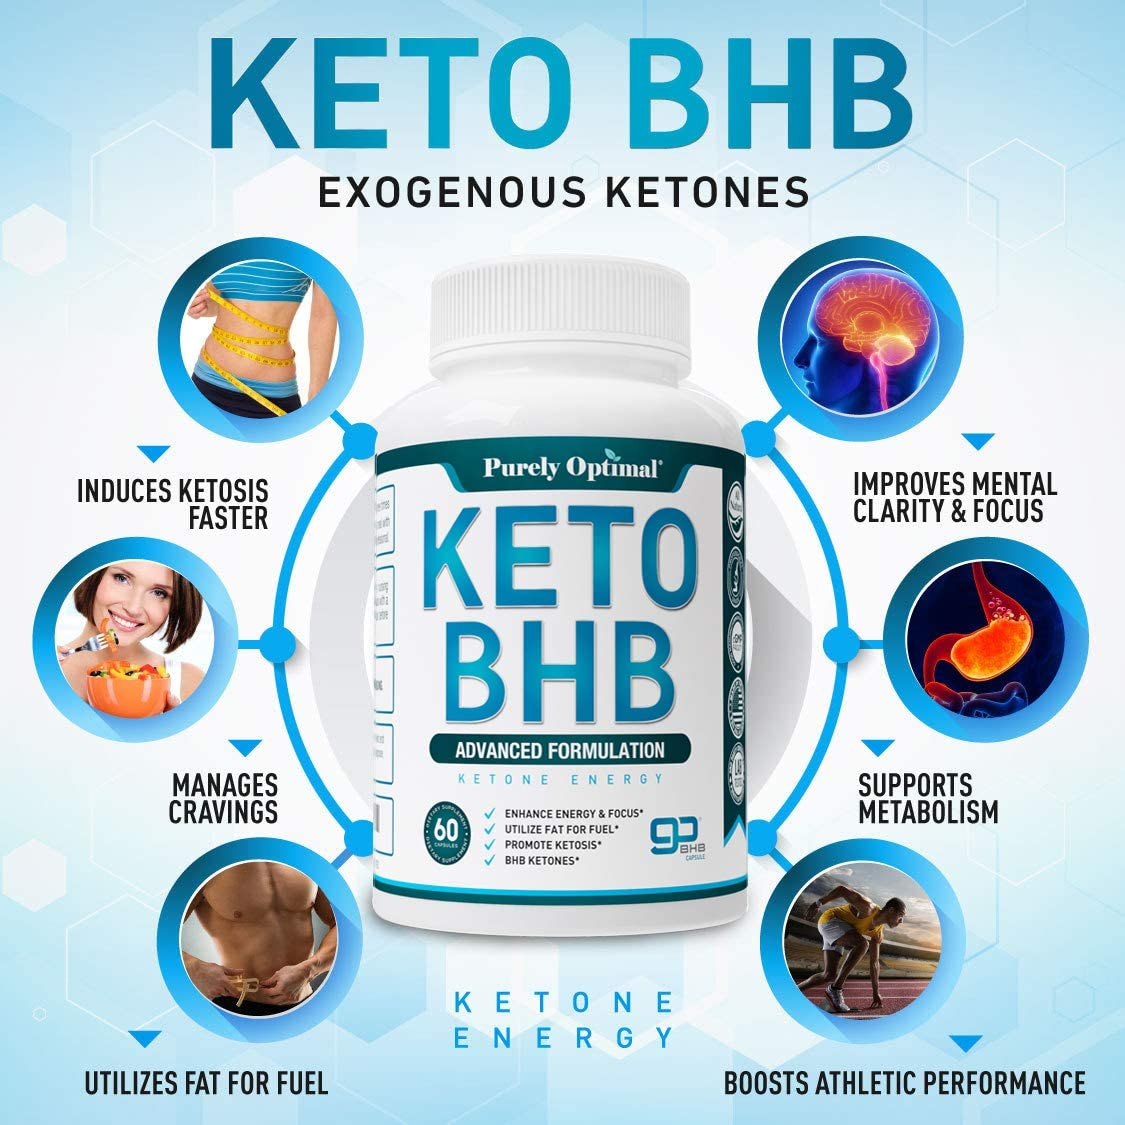 How does the Keto BHB capsule work?